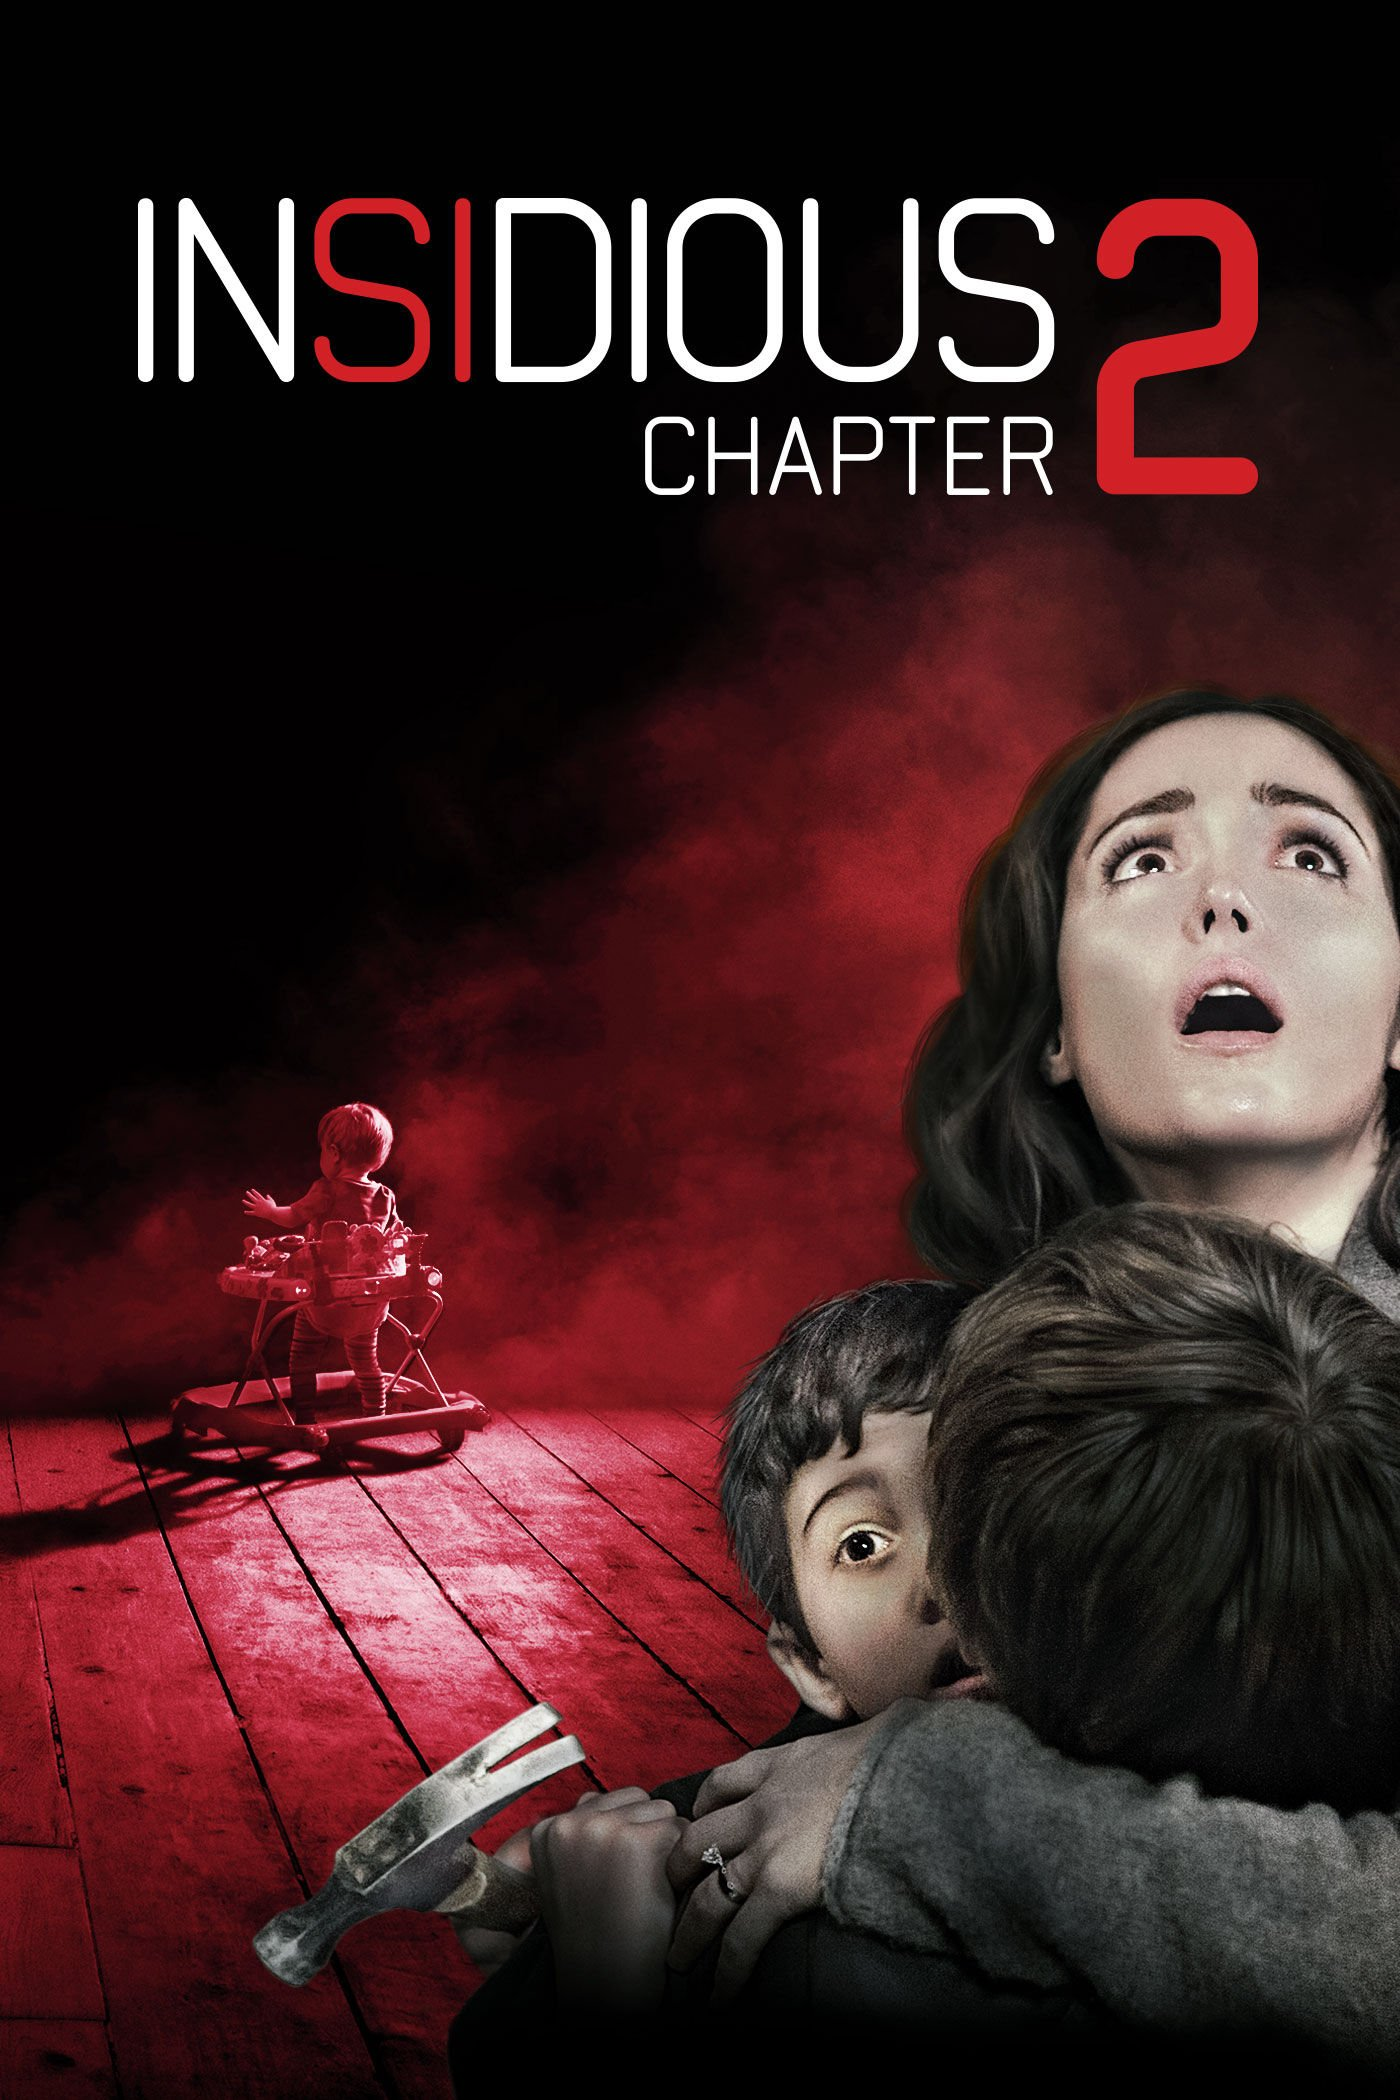 insidious-chapter-2-filming-locations-poster